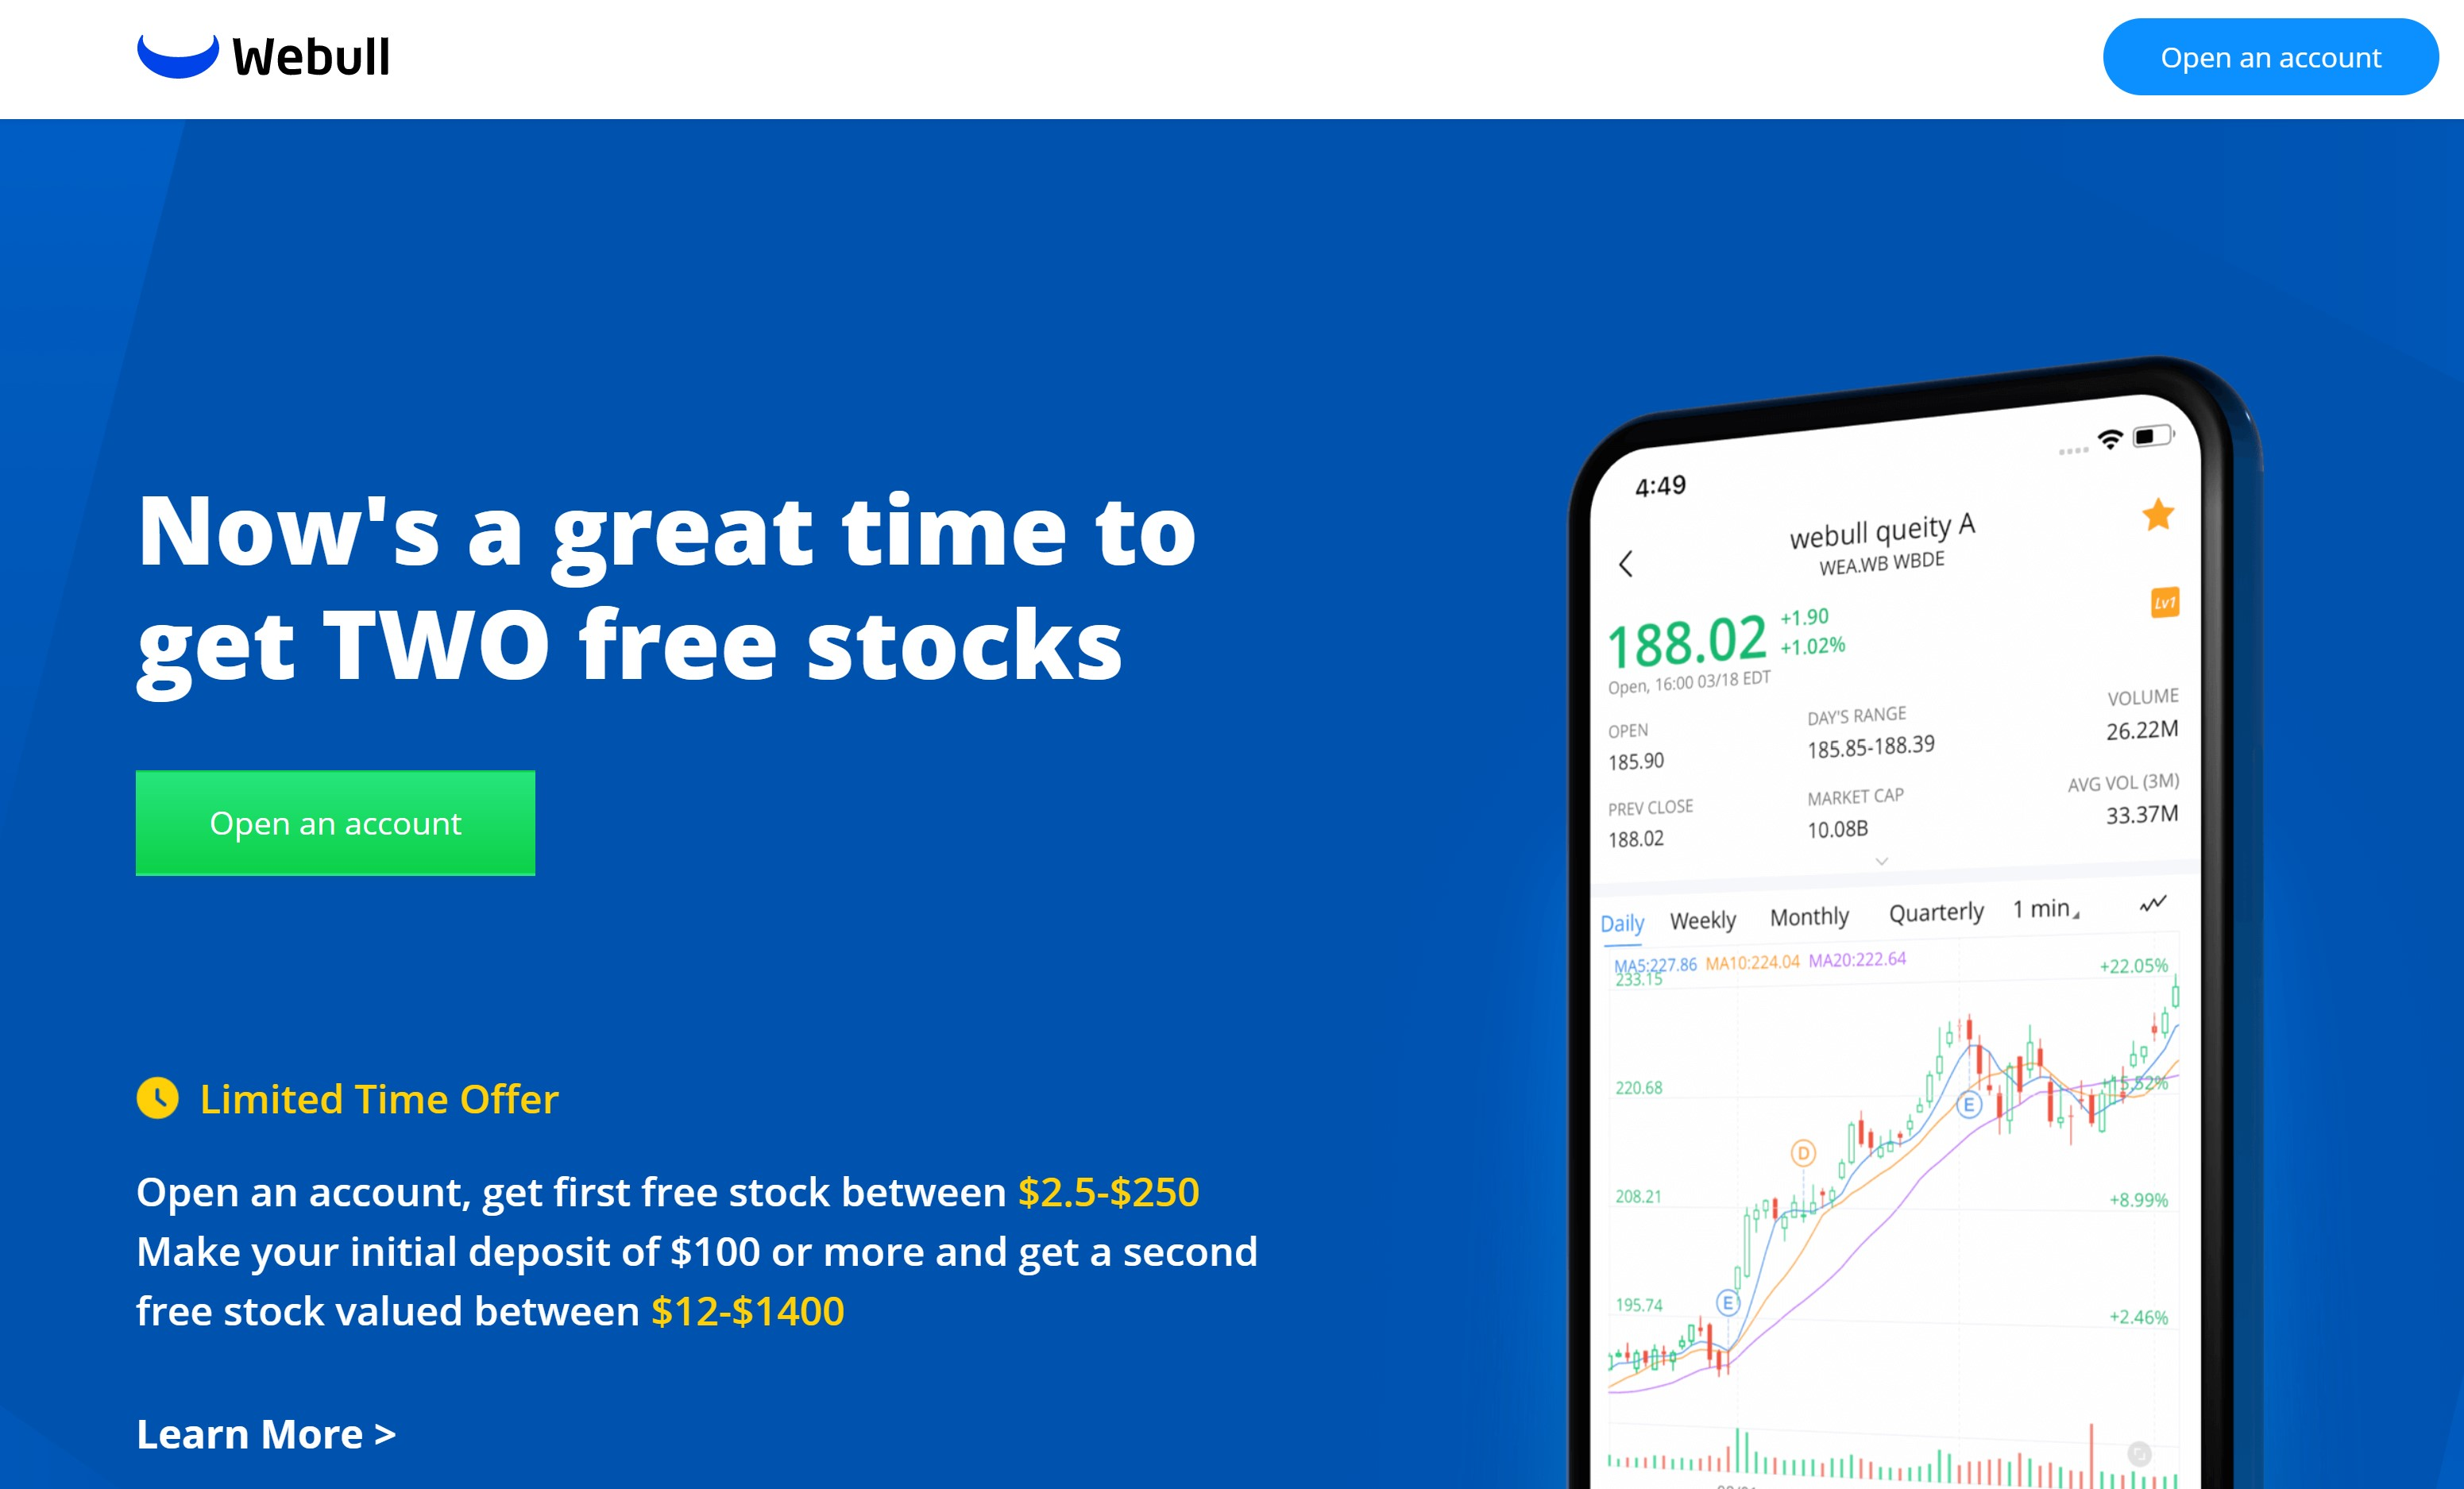 Free money in free stocks just to sign up